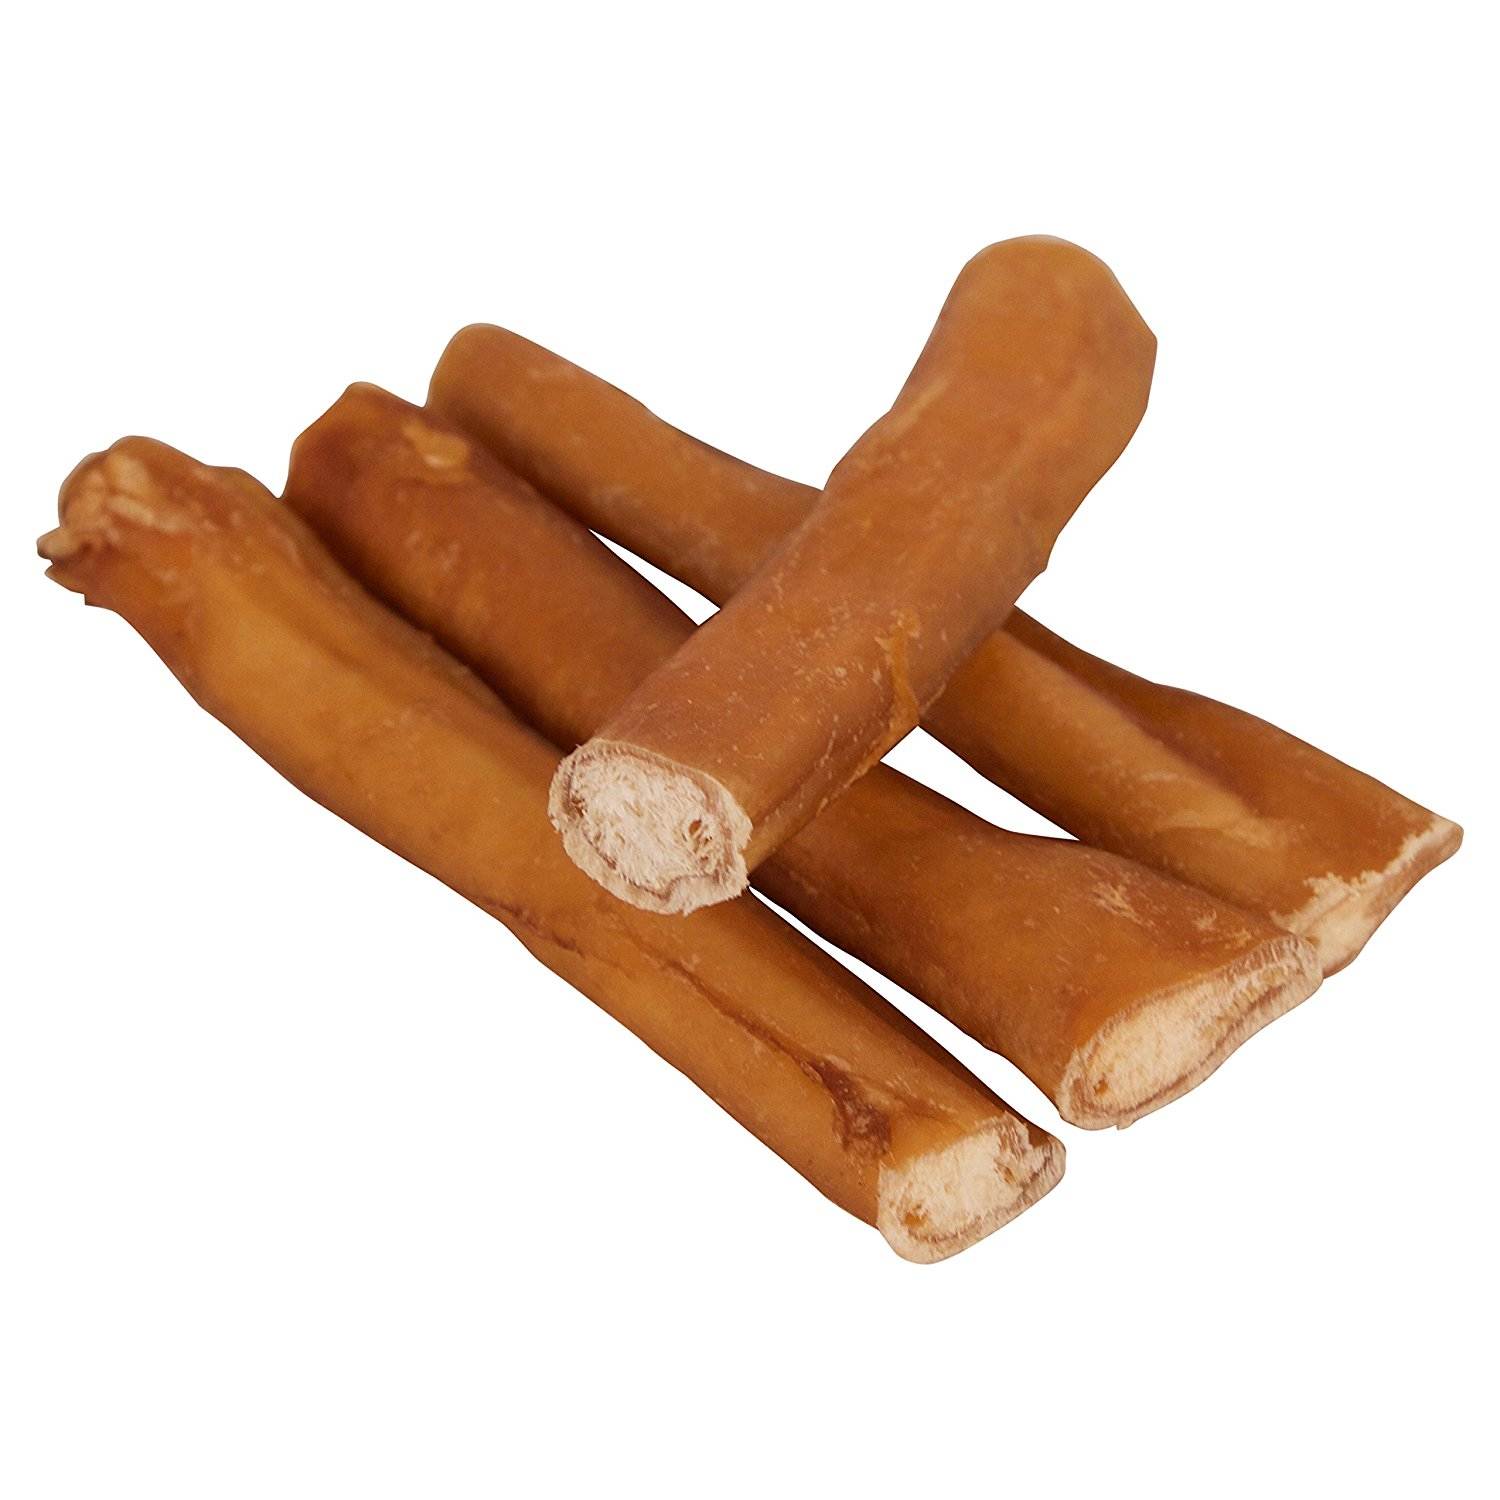 "5"" Straight Bully Sticks for Dogs [Medium Thickness] (100 Pack) - Natural Low Odor Bulk Dog Dental Treats, Best Thick Pizzle Chew Stix, 5 inch, Chemical Free"